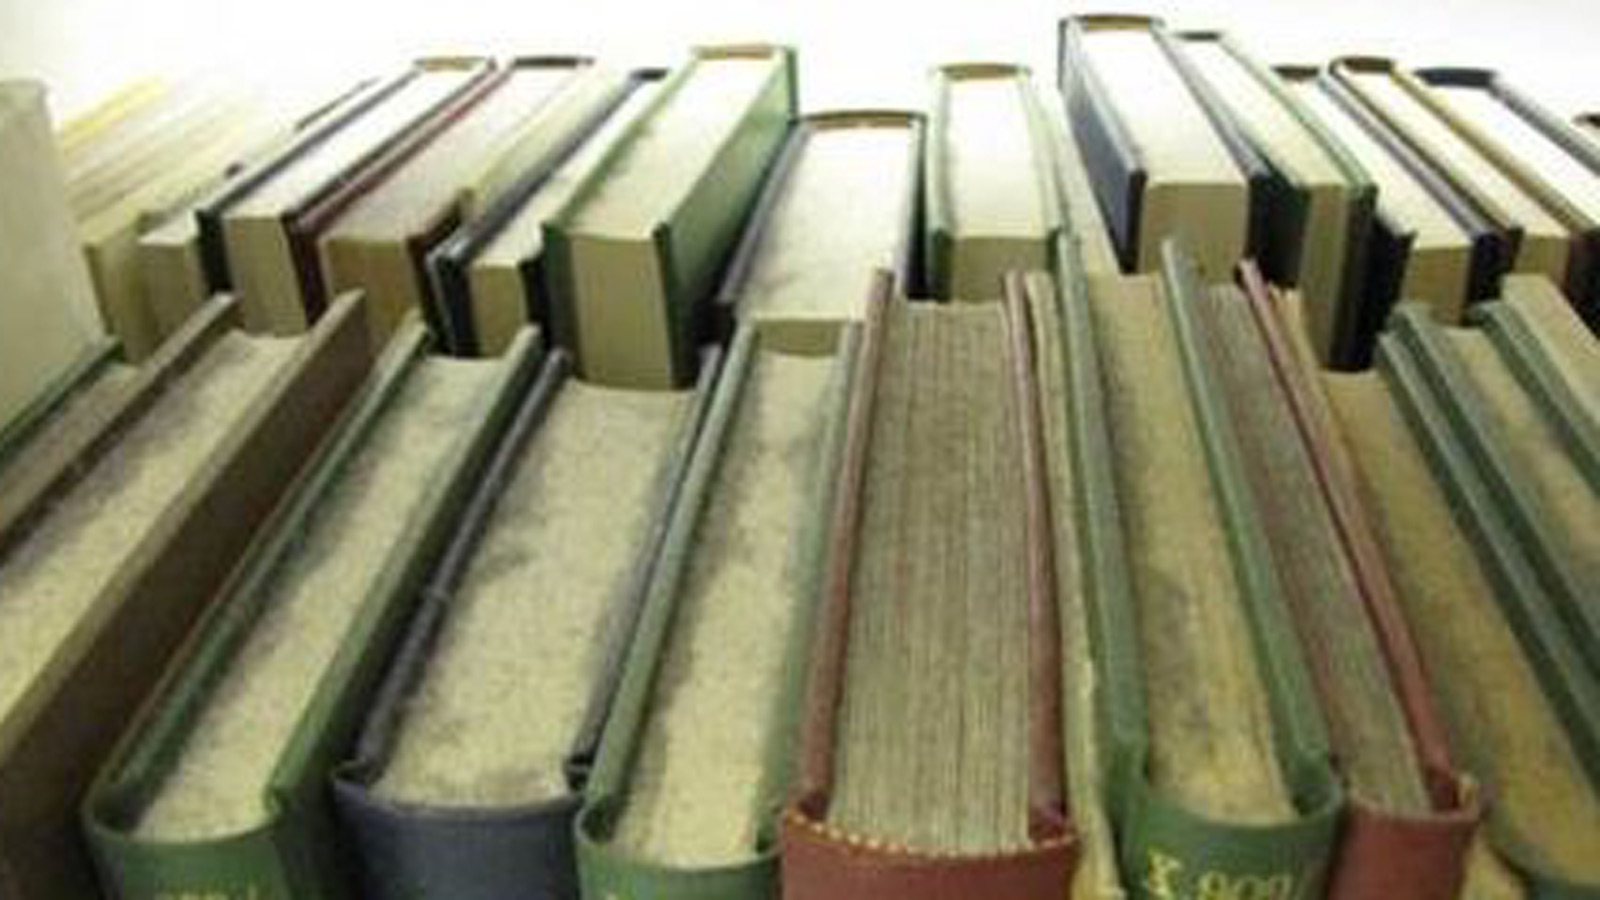 Dust covered books